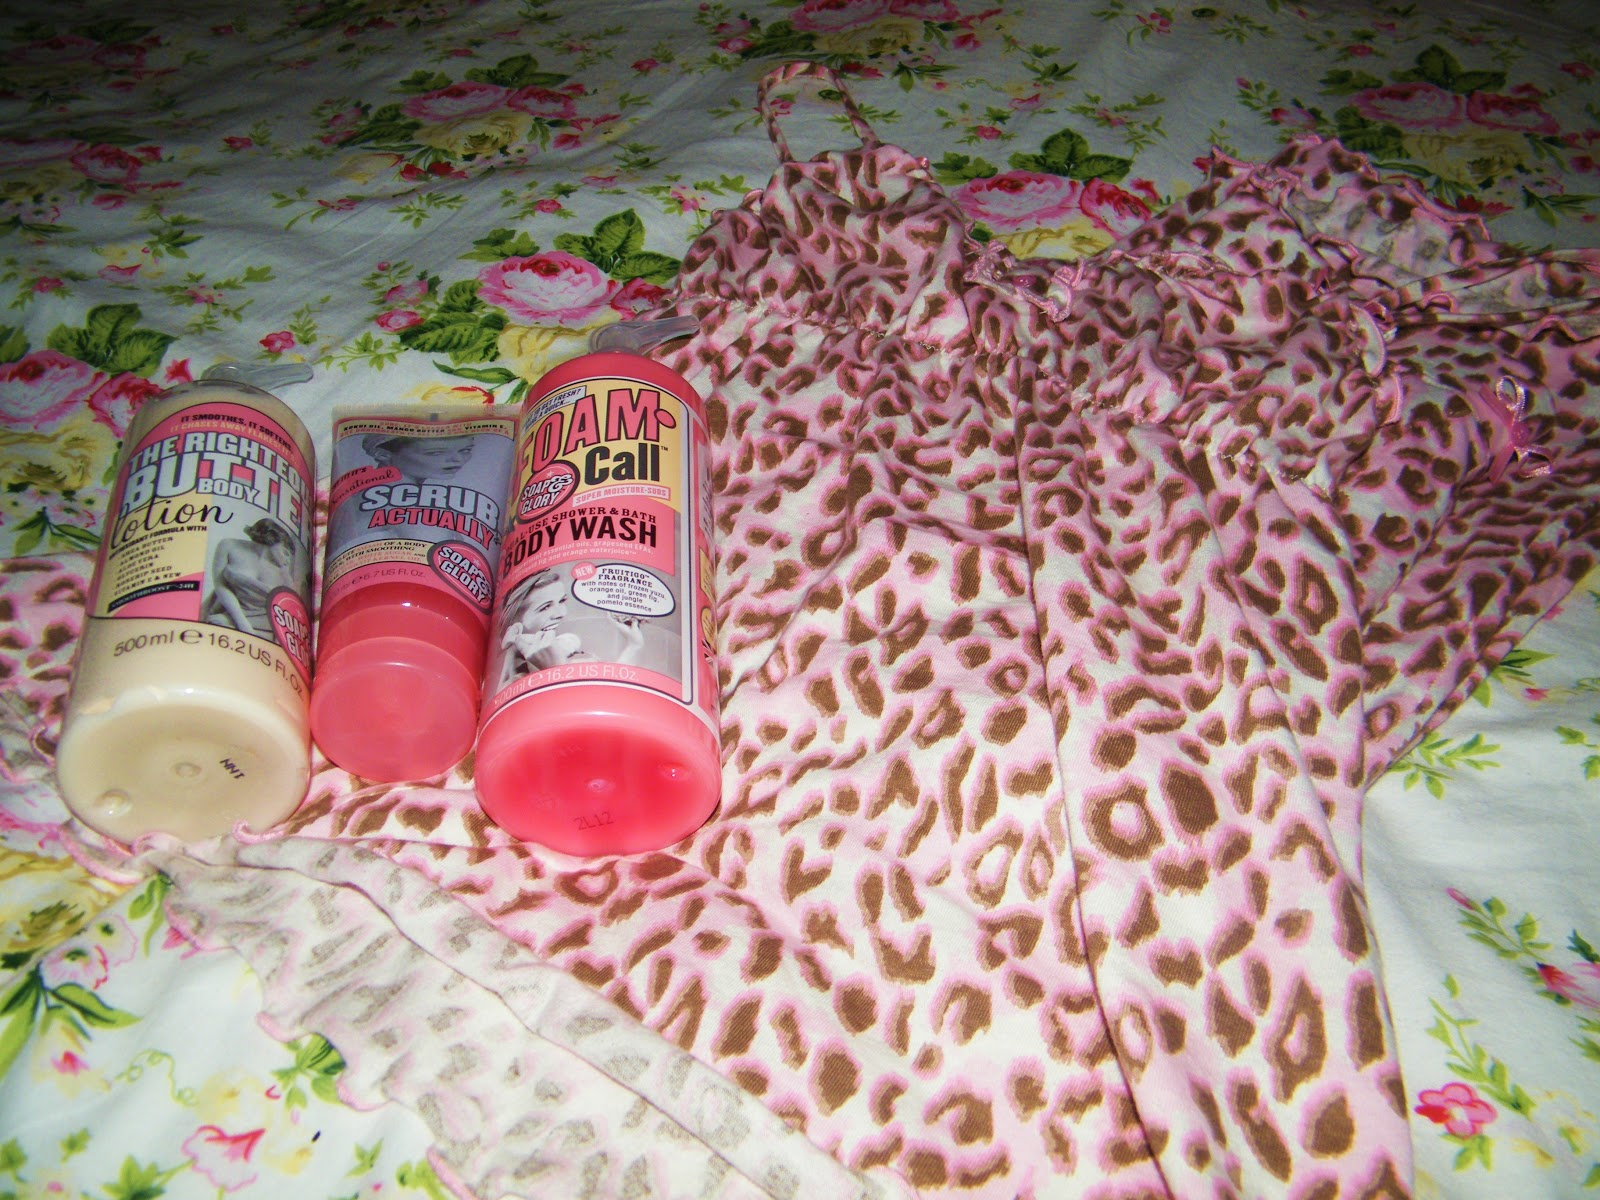 Soap and Glory and Primark Pajamas